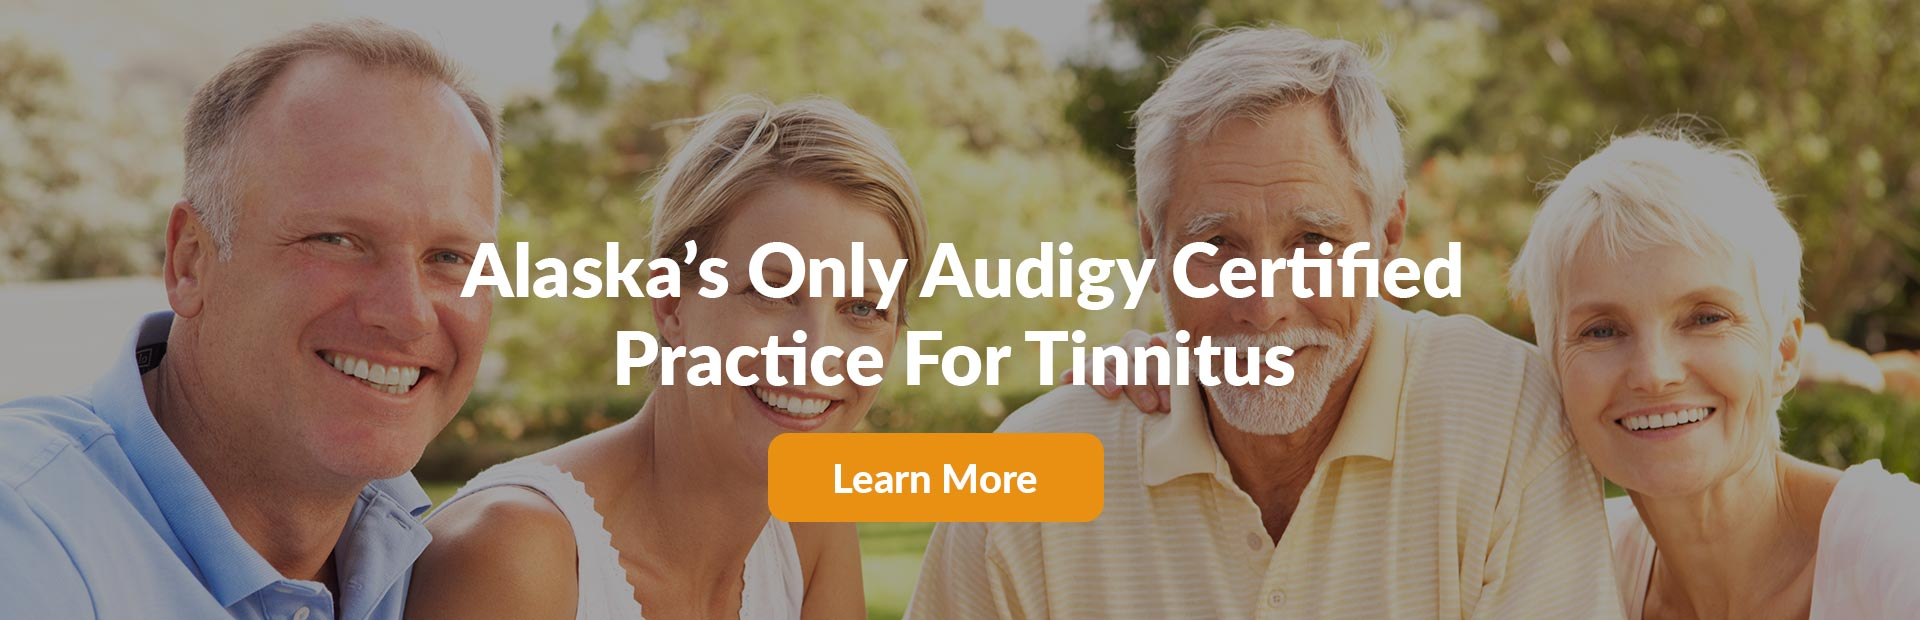 learn more tinnitus